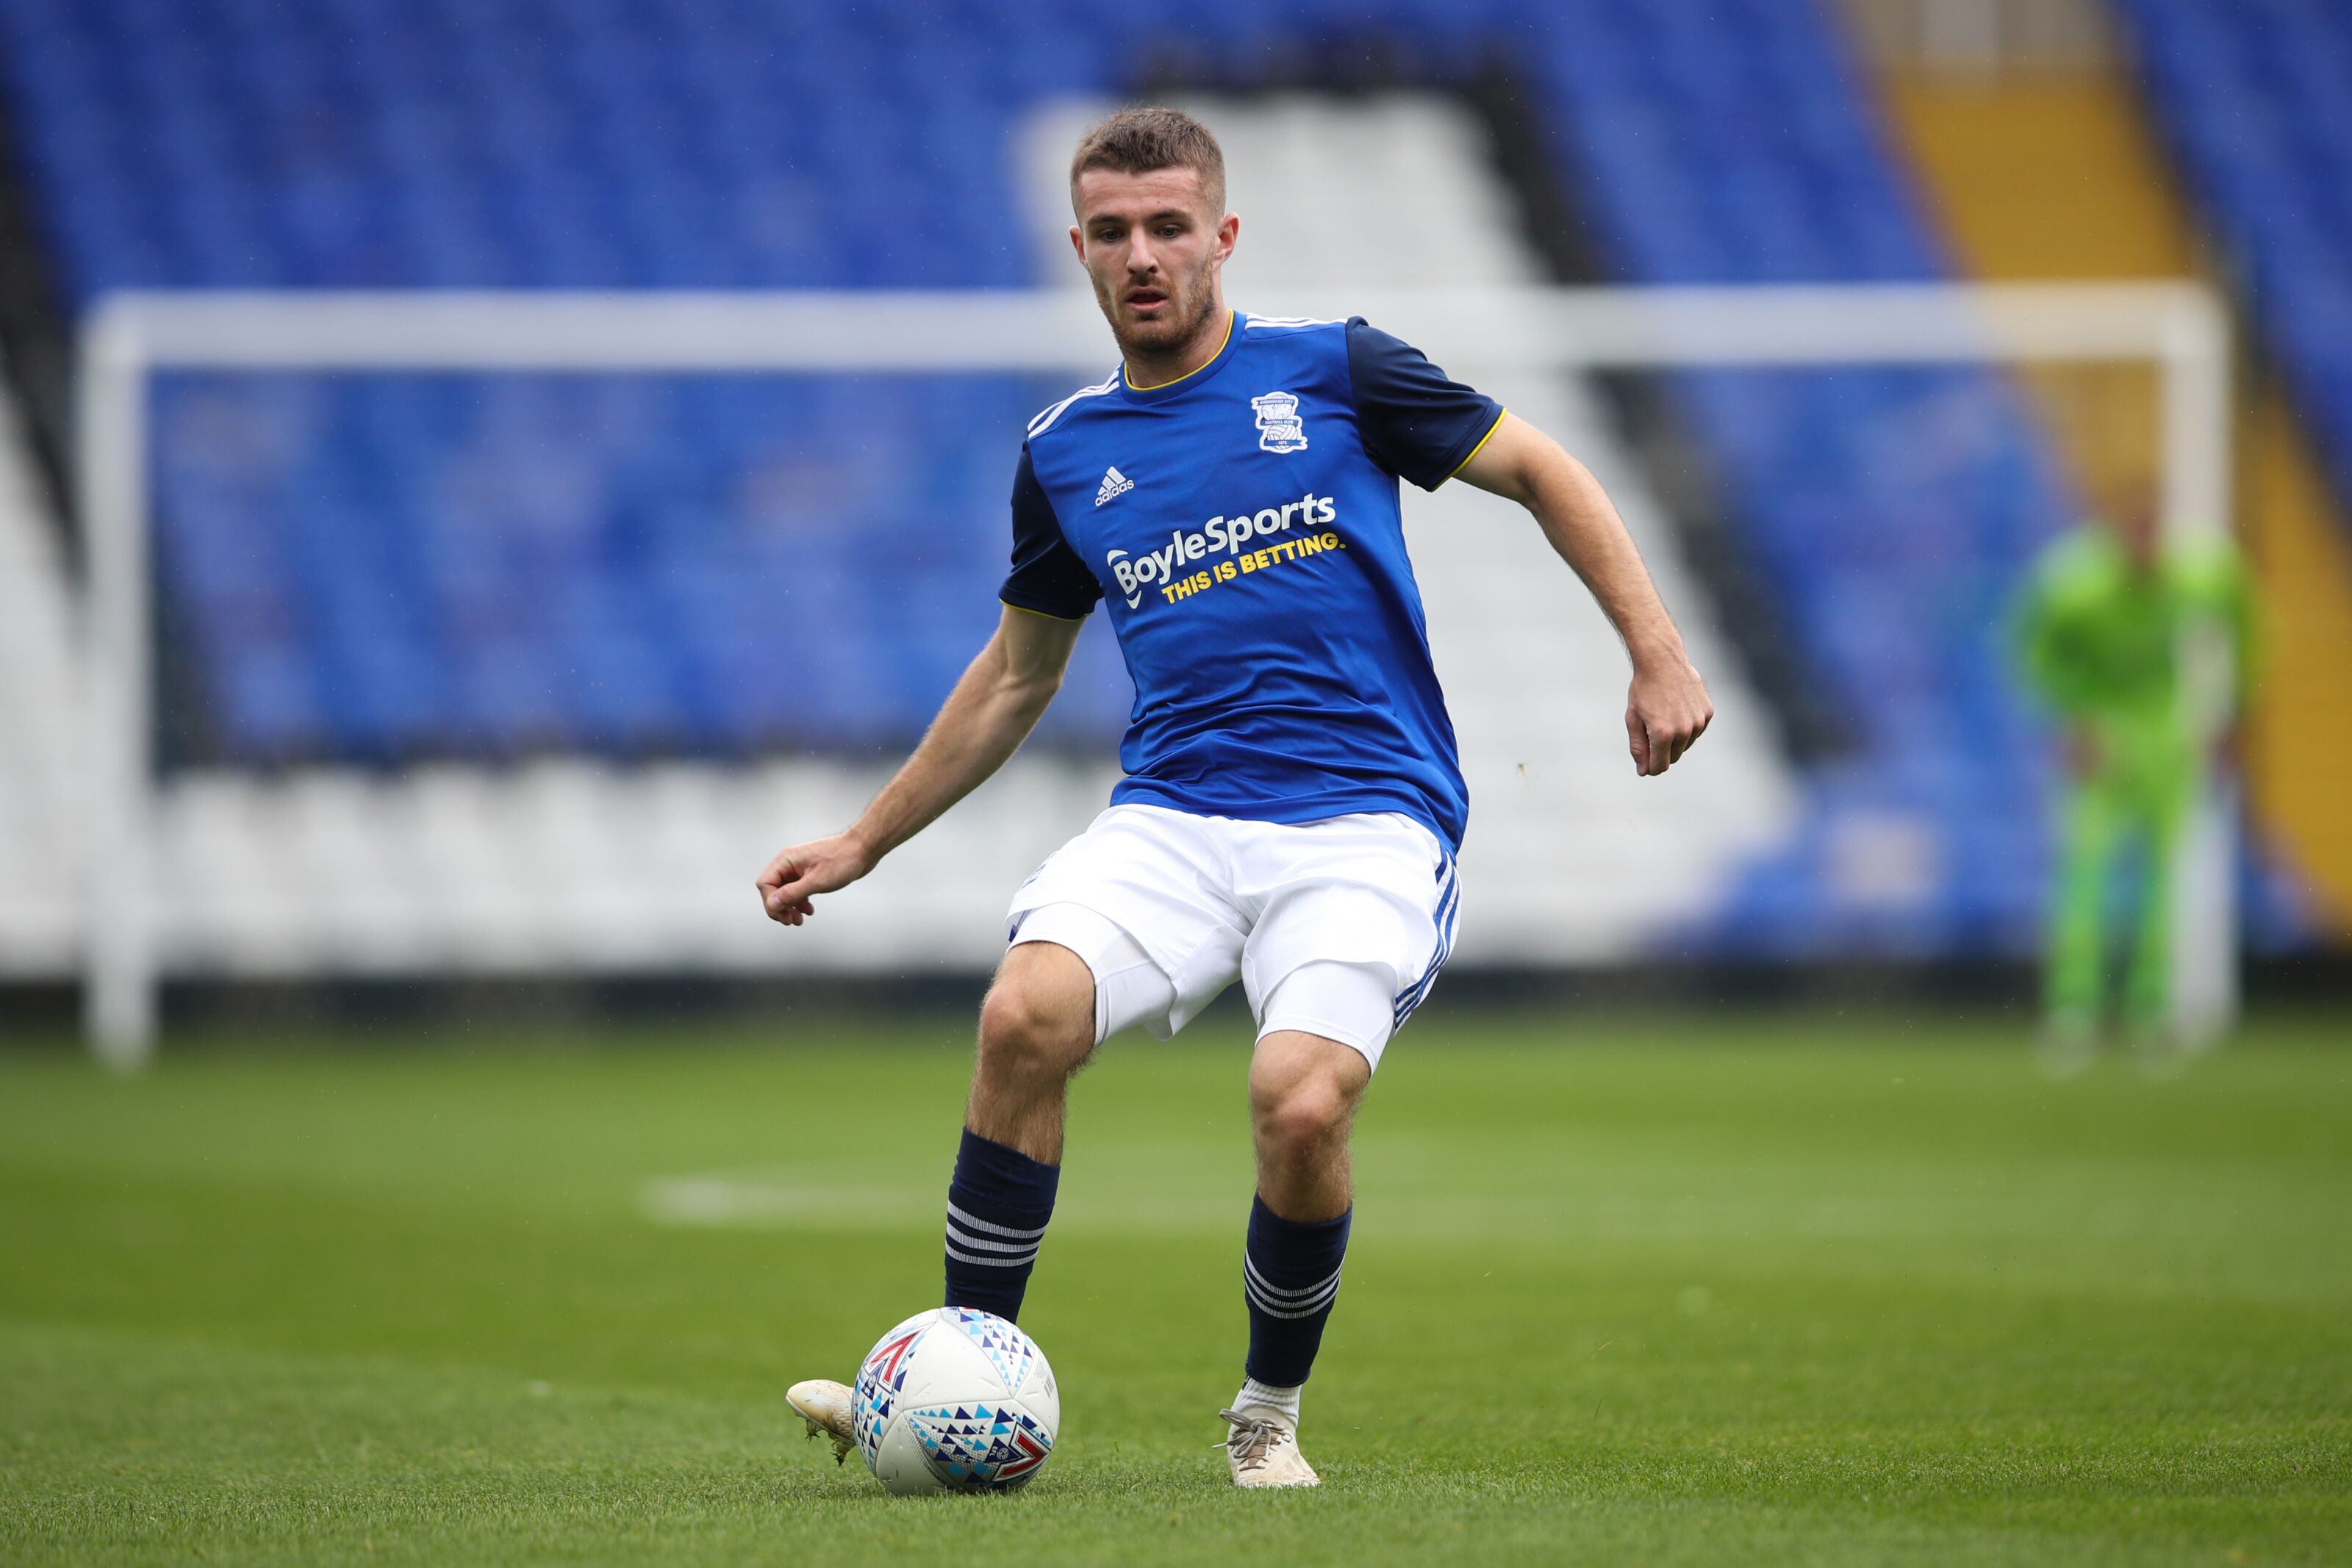 Arsenal: Dan Crowley, another one who got away?